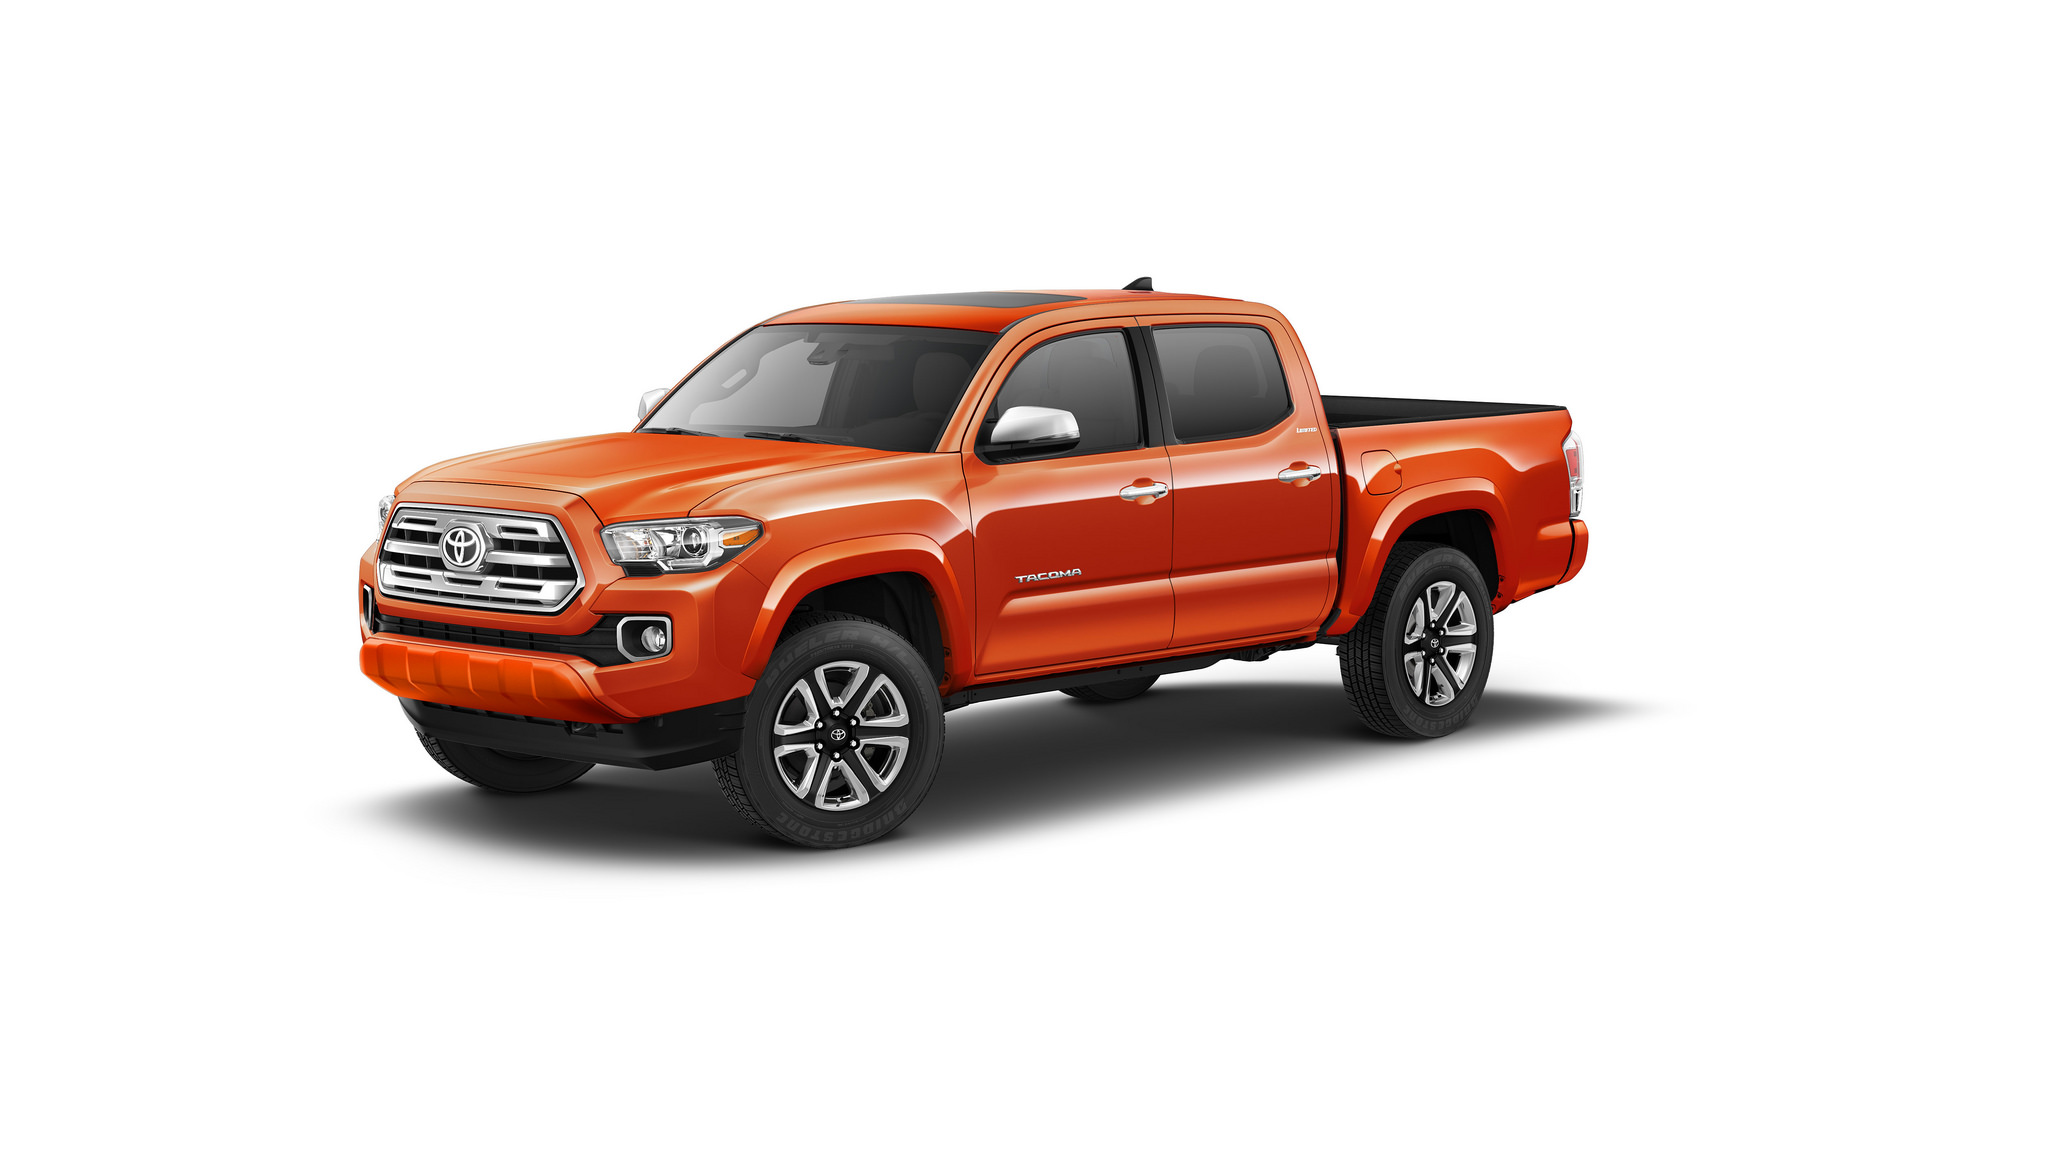 2018 Toyota Tacoma Serving the Lehigh Valley | Krause Toyota - Breinigsville, PA